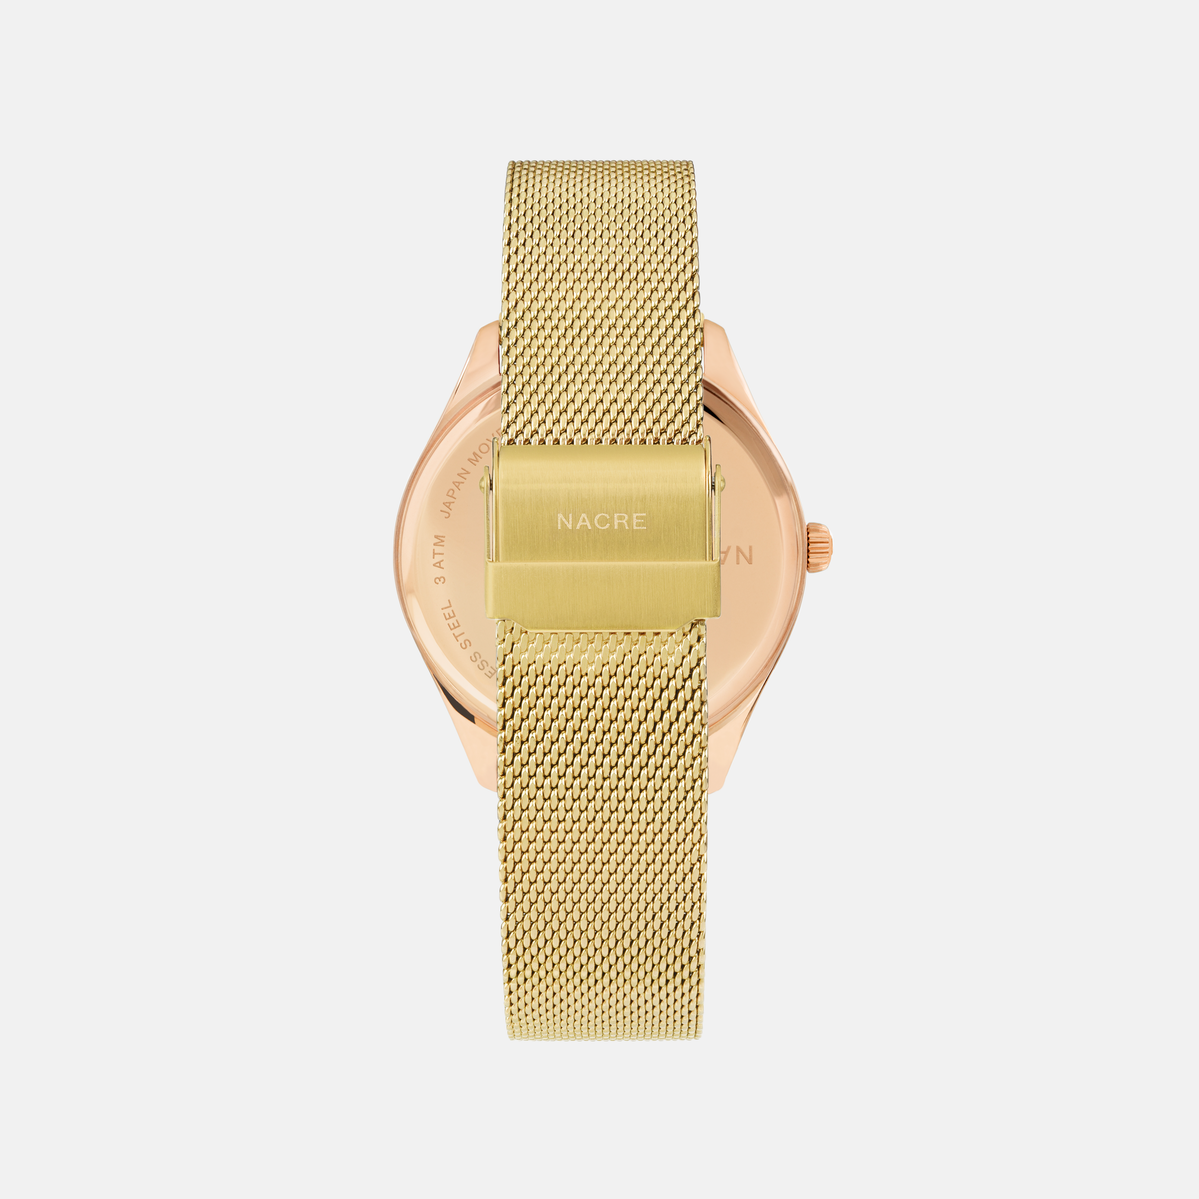 Lune 8 - Rose Gold and White - Gold Mesh